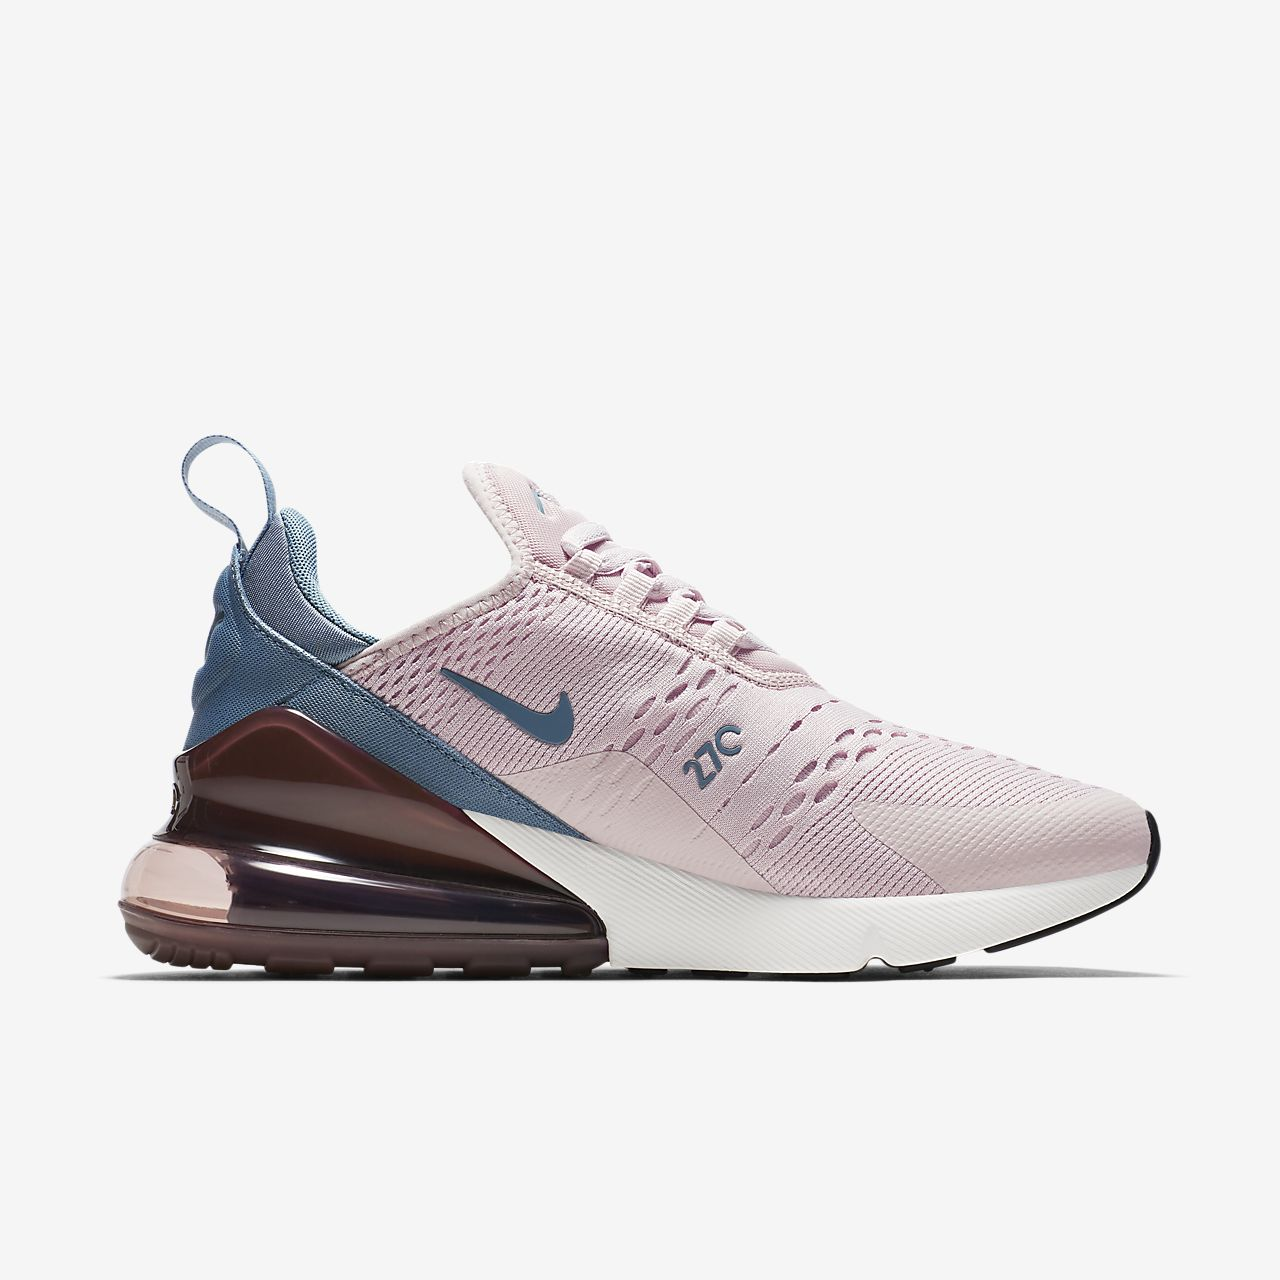 64bb13d6beb4 Nike Air Max 270 Women s Shoe. Nike.com